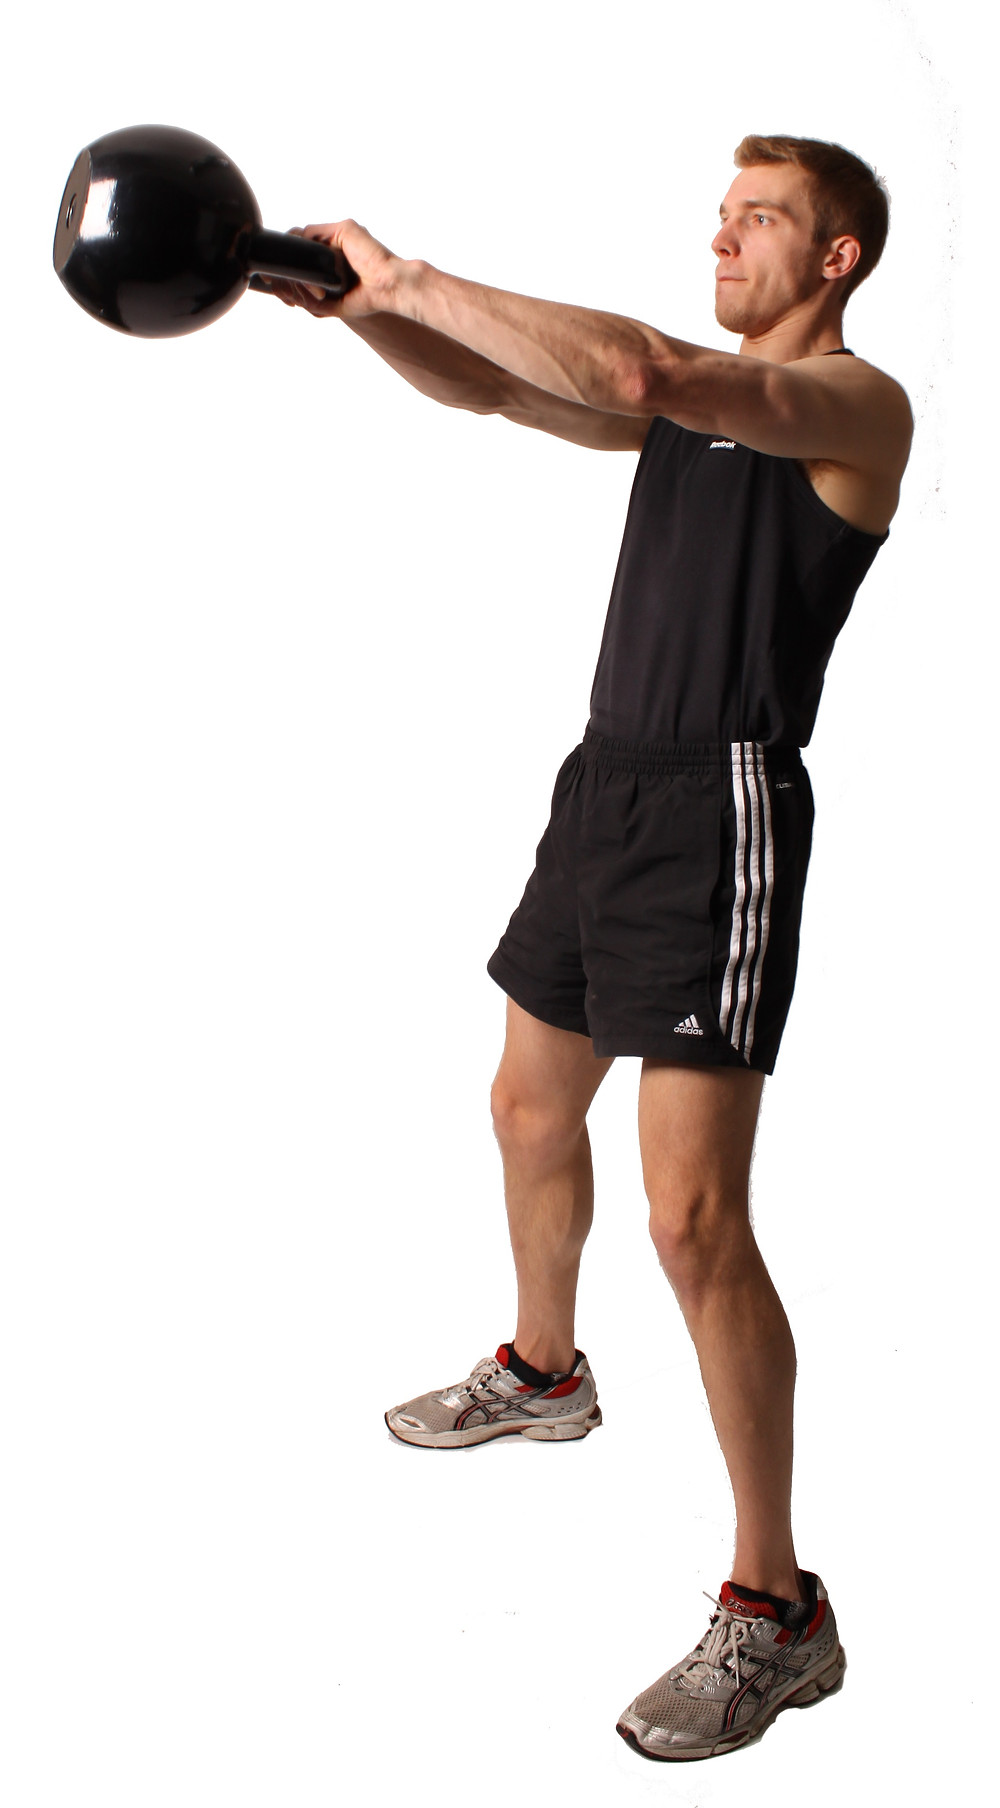 man performing the kettlebell swing